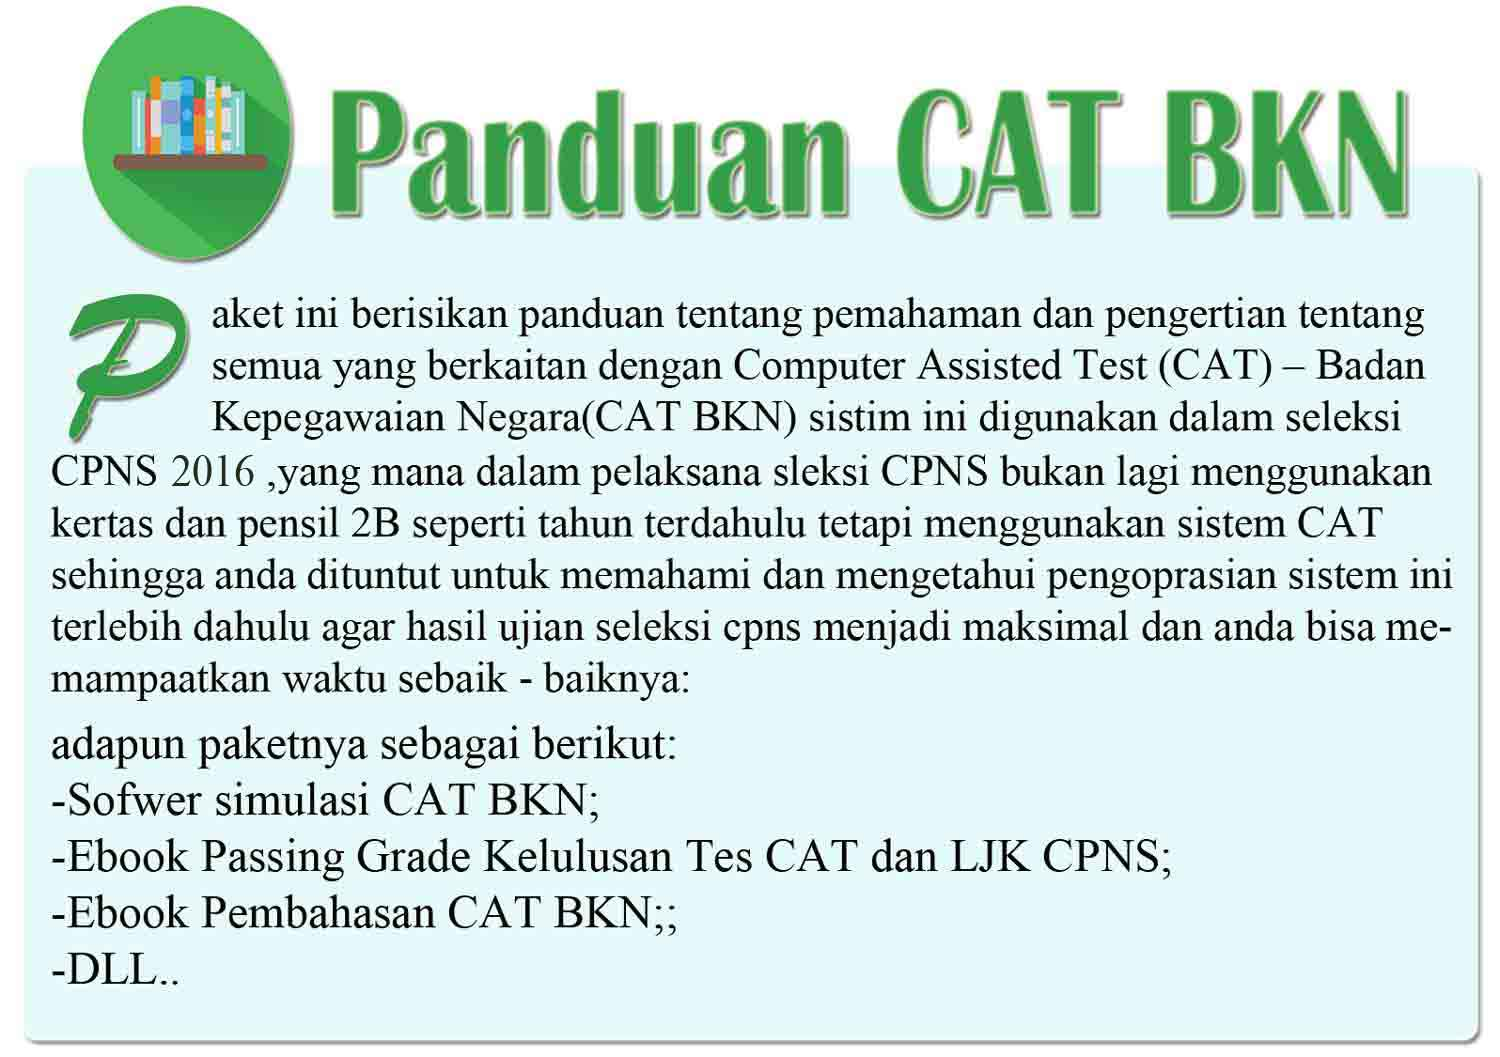 ebook panduan cat bkn, software CAT BKN, Tes CAT CPNS 2017-2018, LJK CPNS